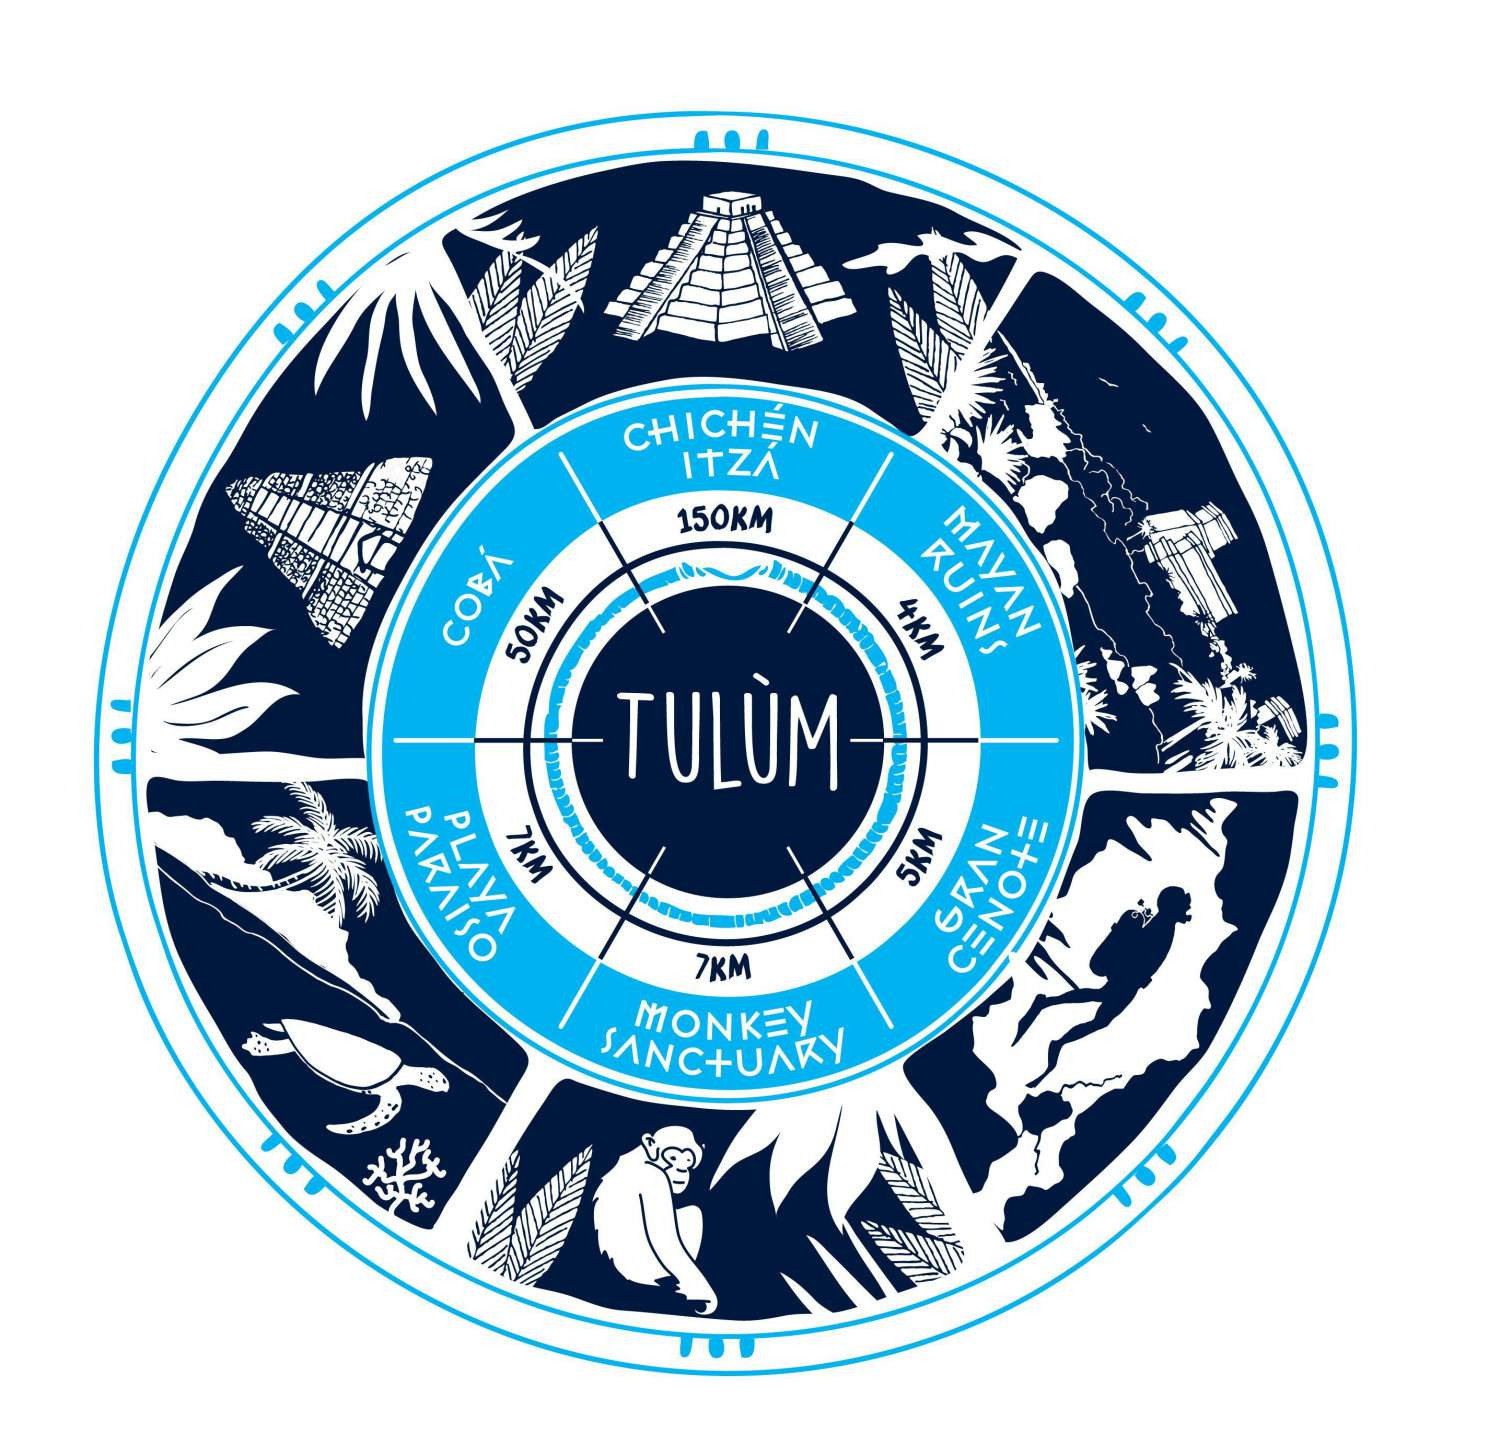 Attraction map from Tulum